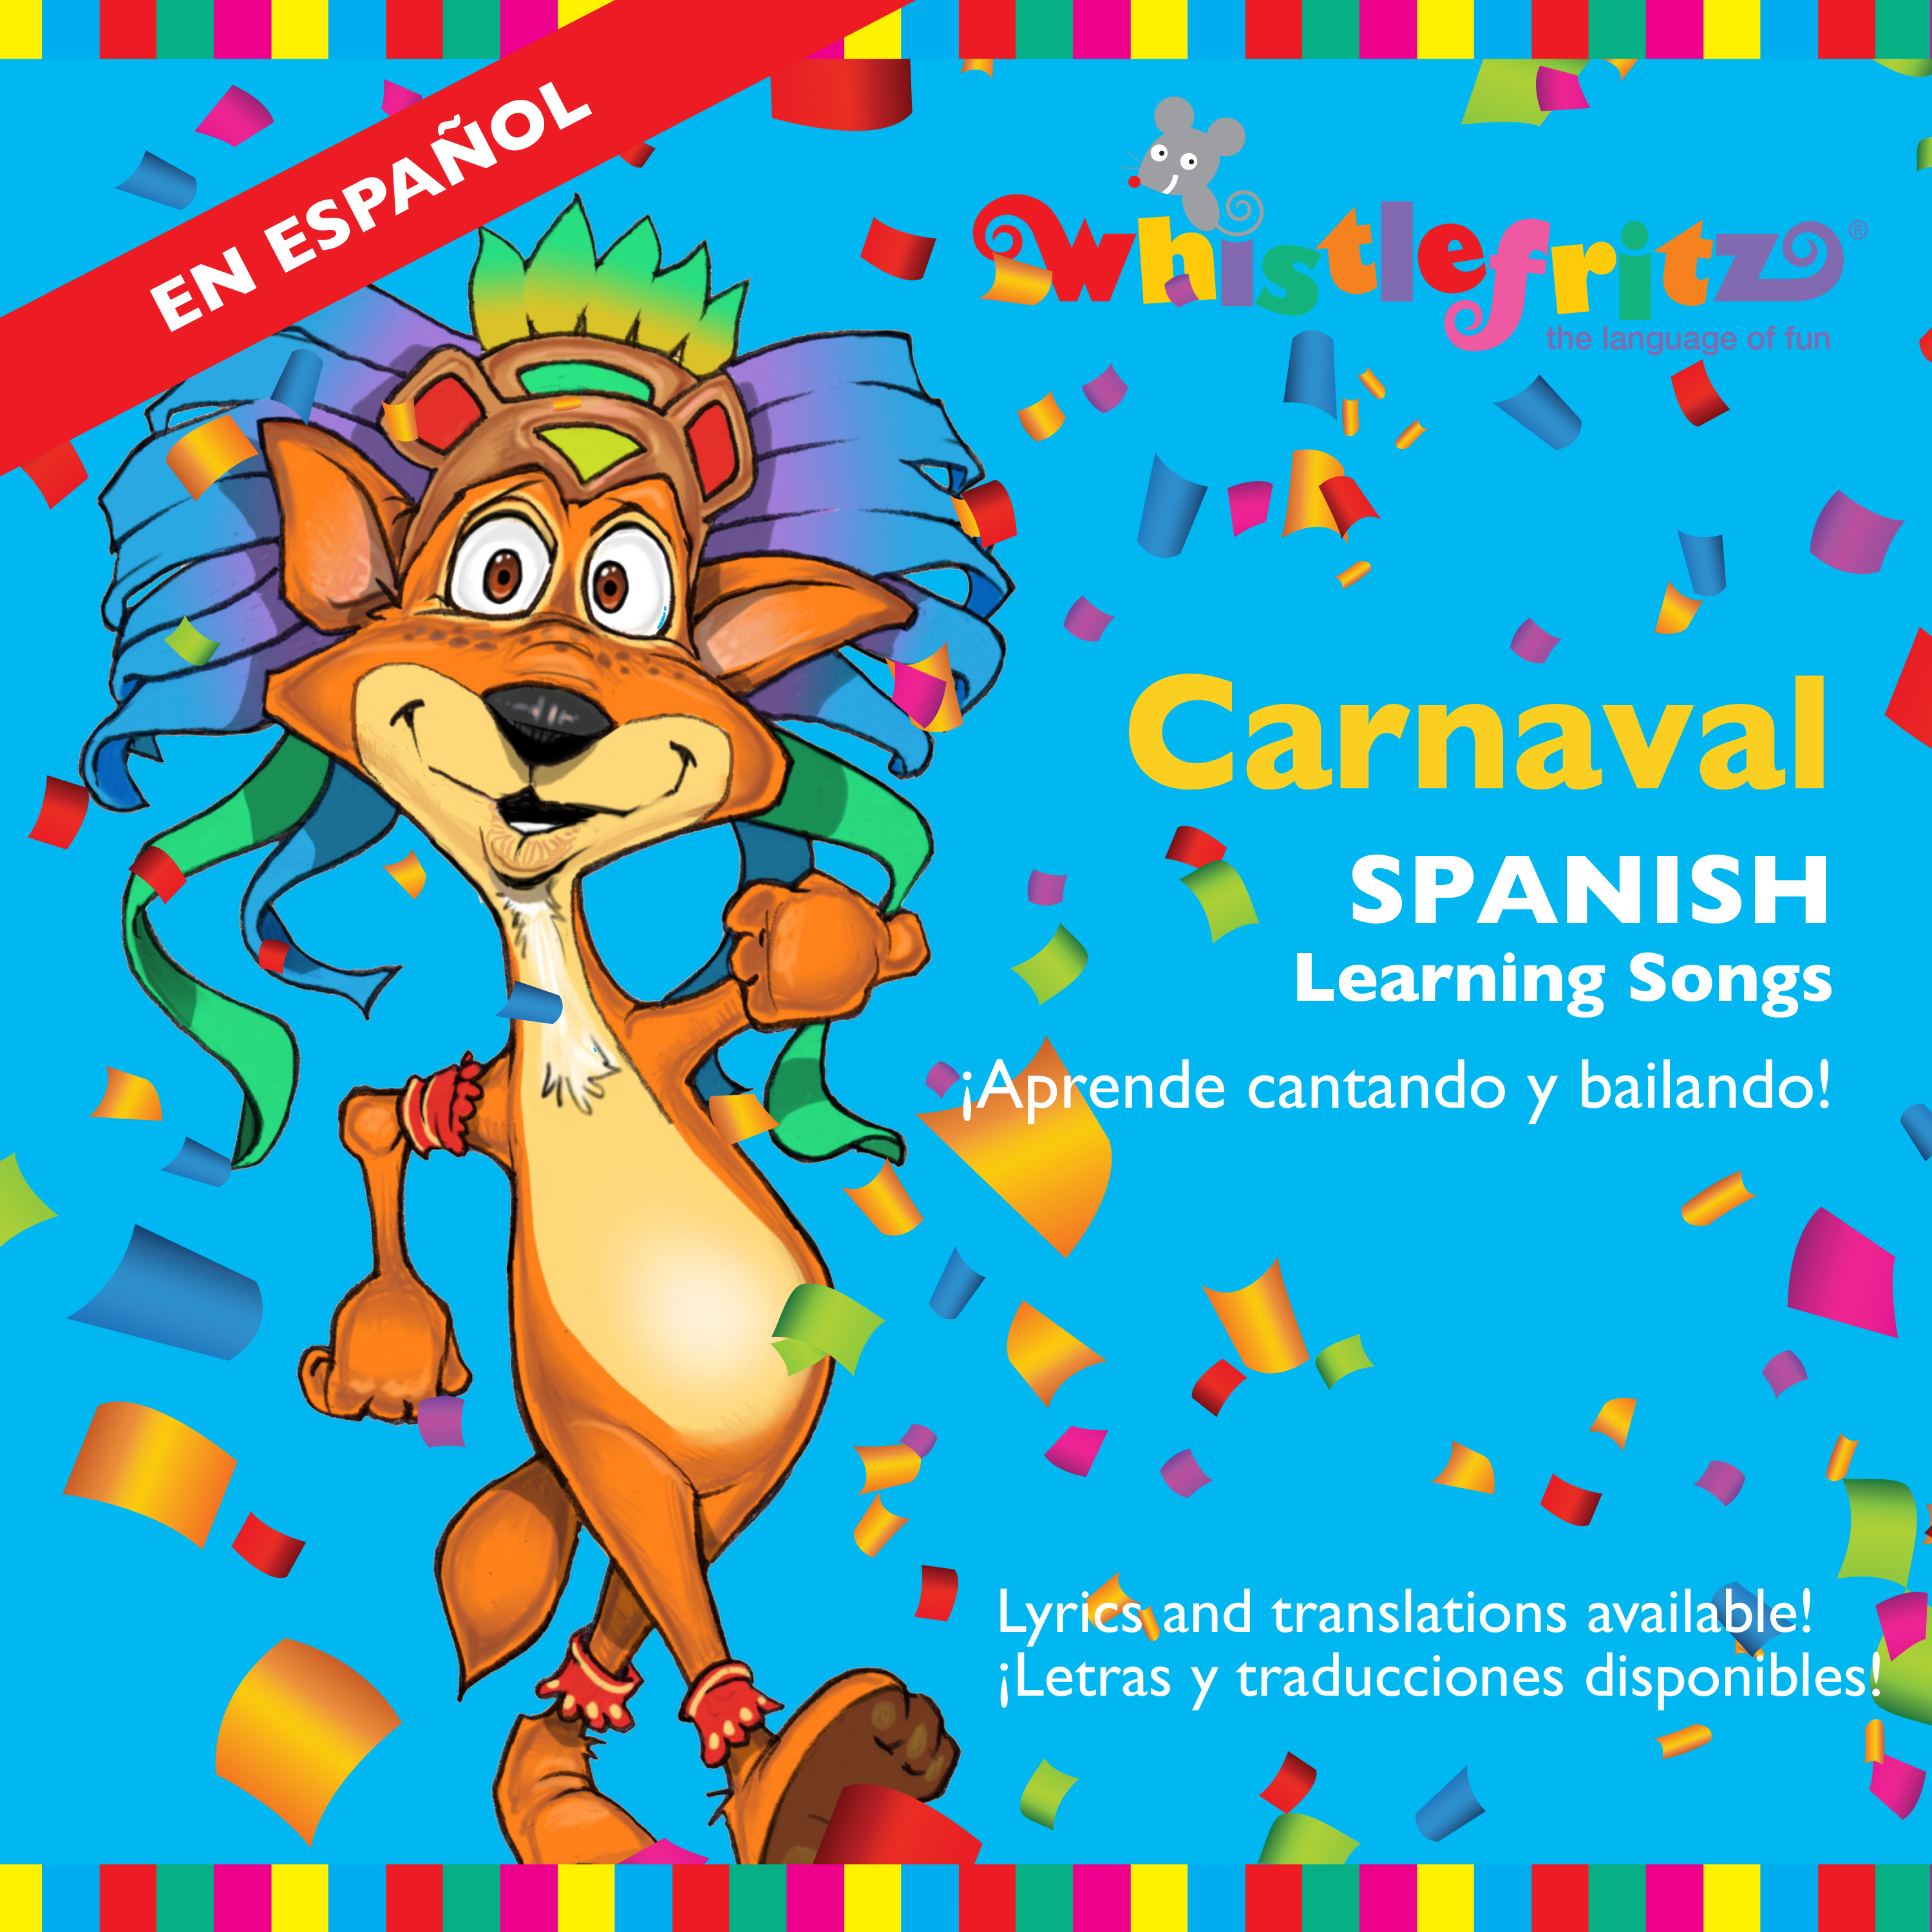 CARNAVAL – Spanish Learning Songs